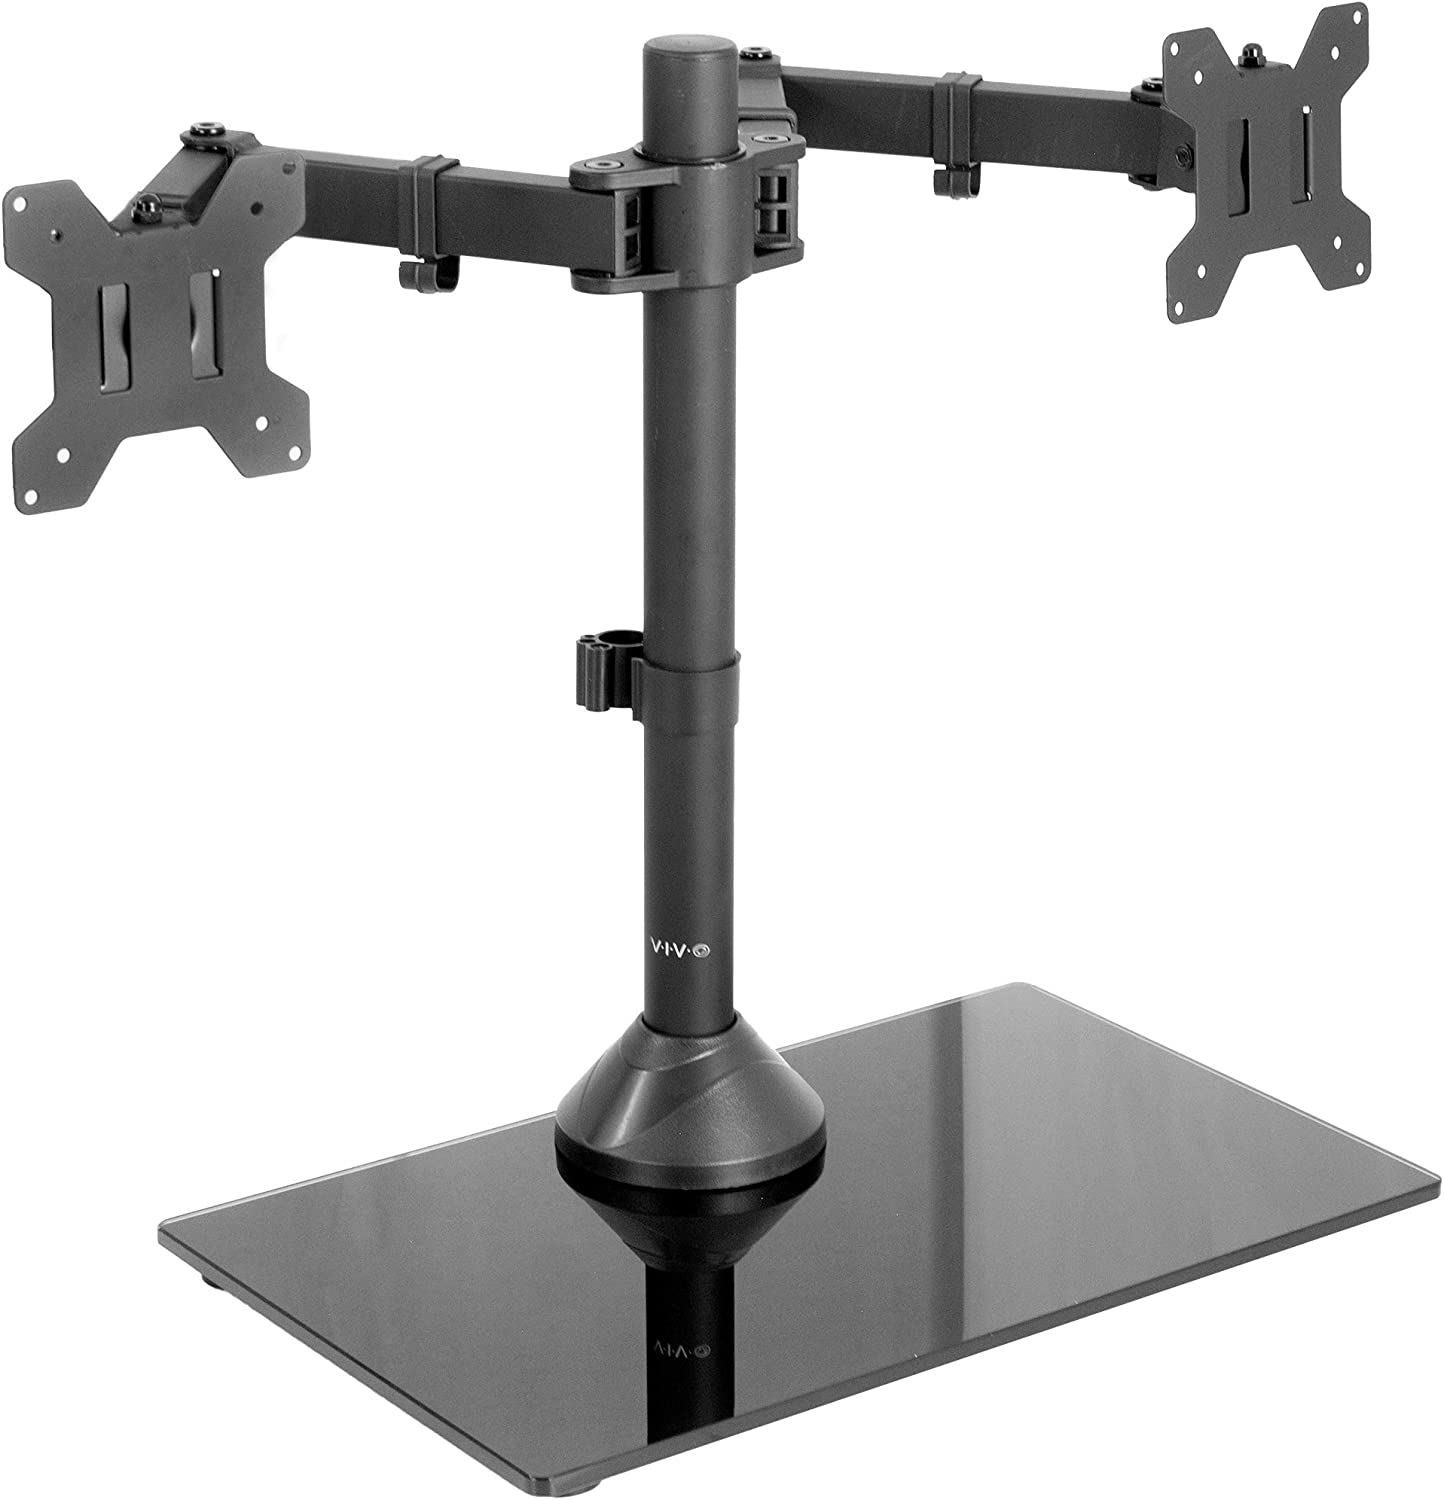 VIVO Freestanding Black Dual Monitor Stand with Sleek Glass Base and Adjustable Arms, Mounts 2 Screens up to 27 inch and 22 lbs Each, STAND-V002FG